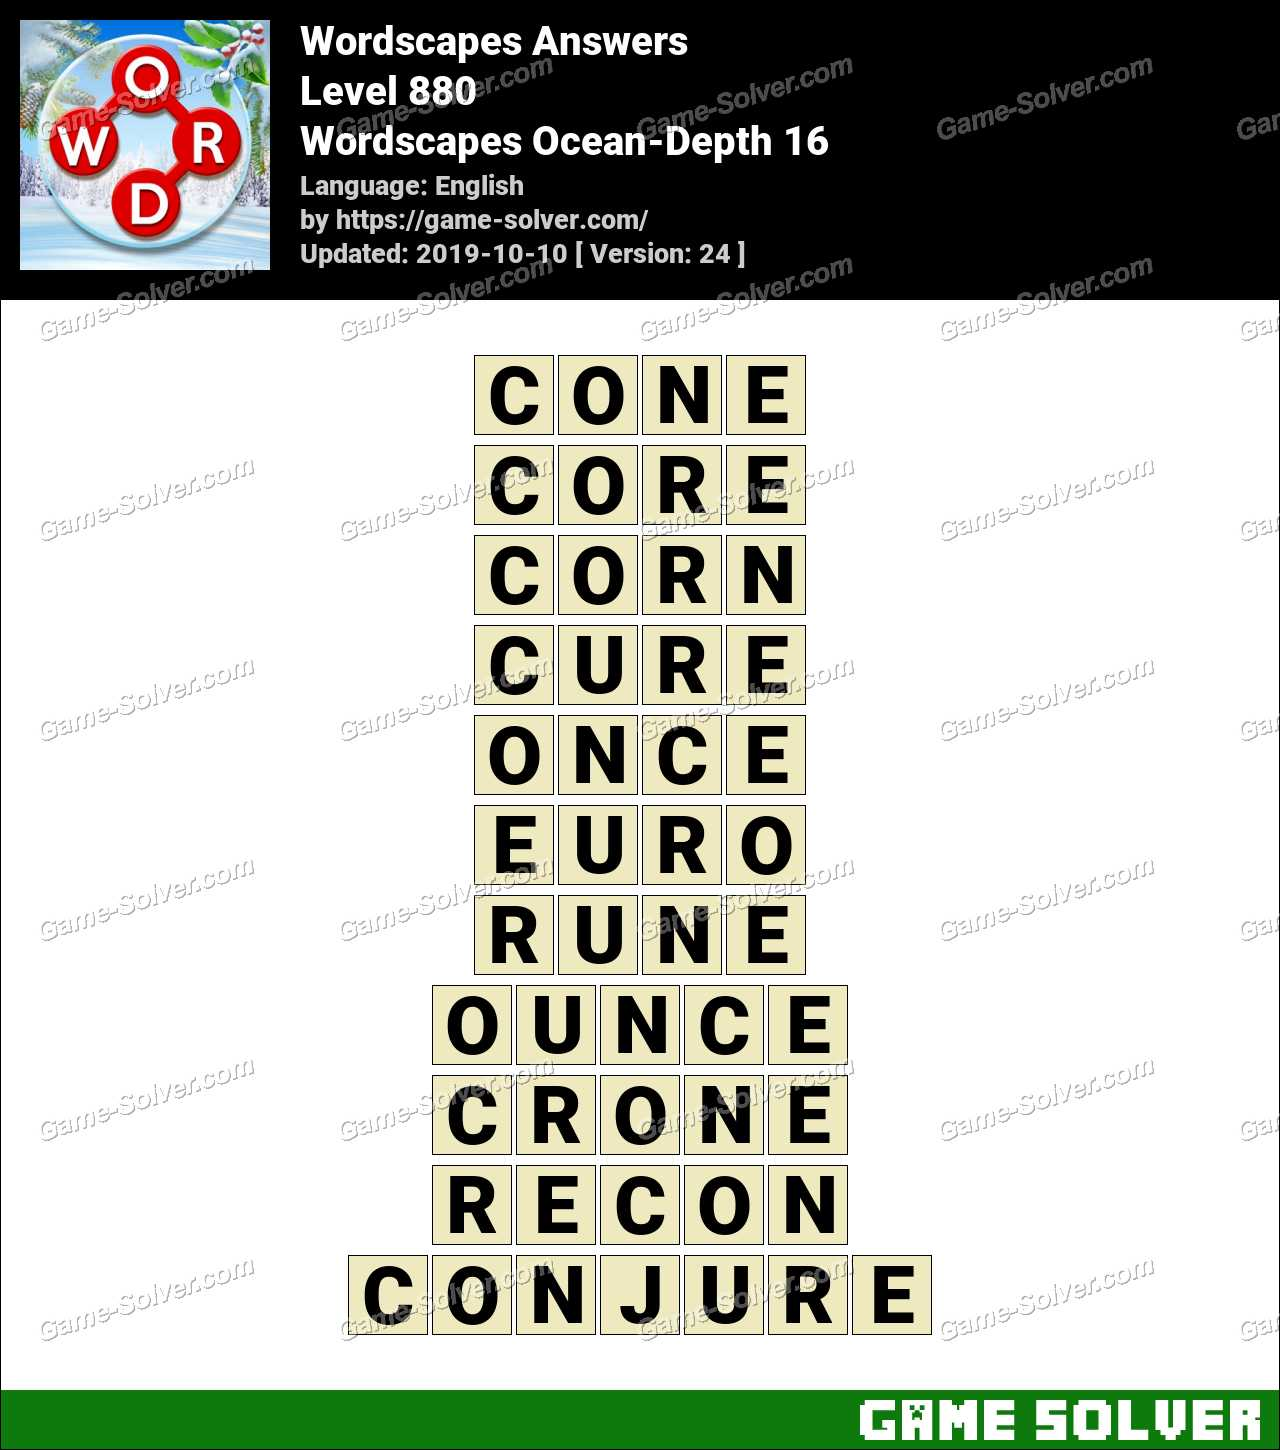 Wordscapes Ocean-Depth 16 Answers